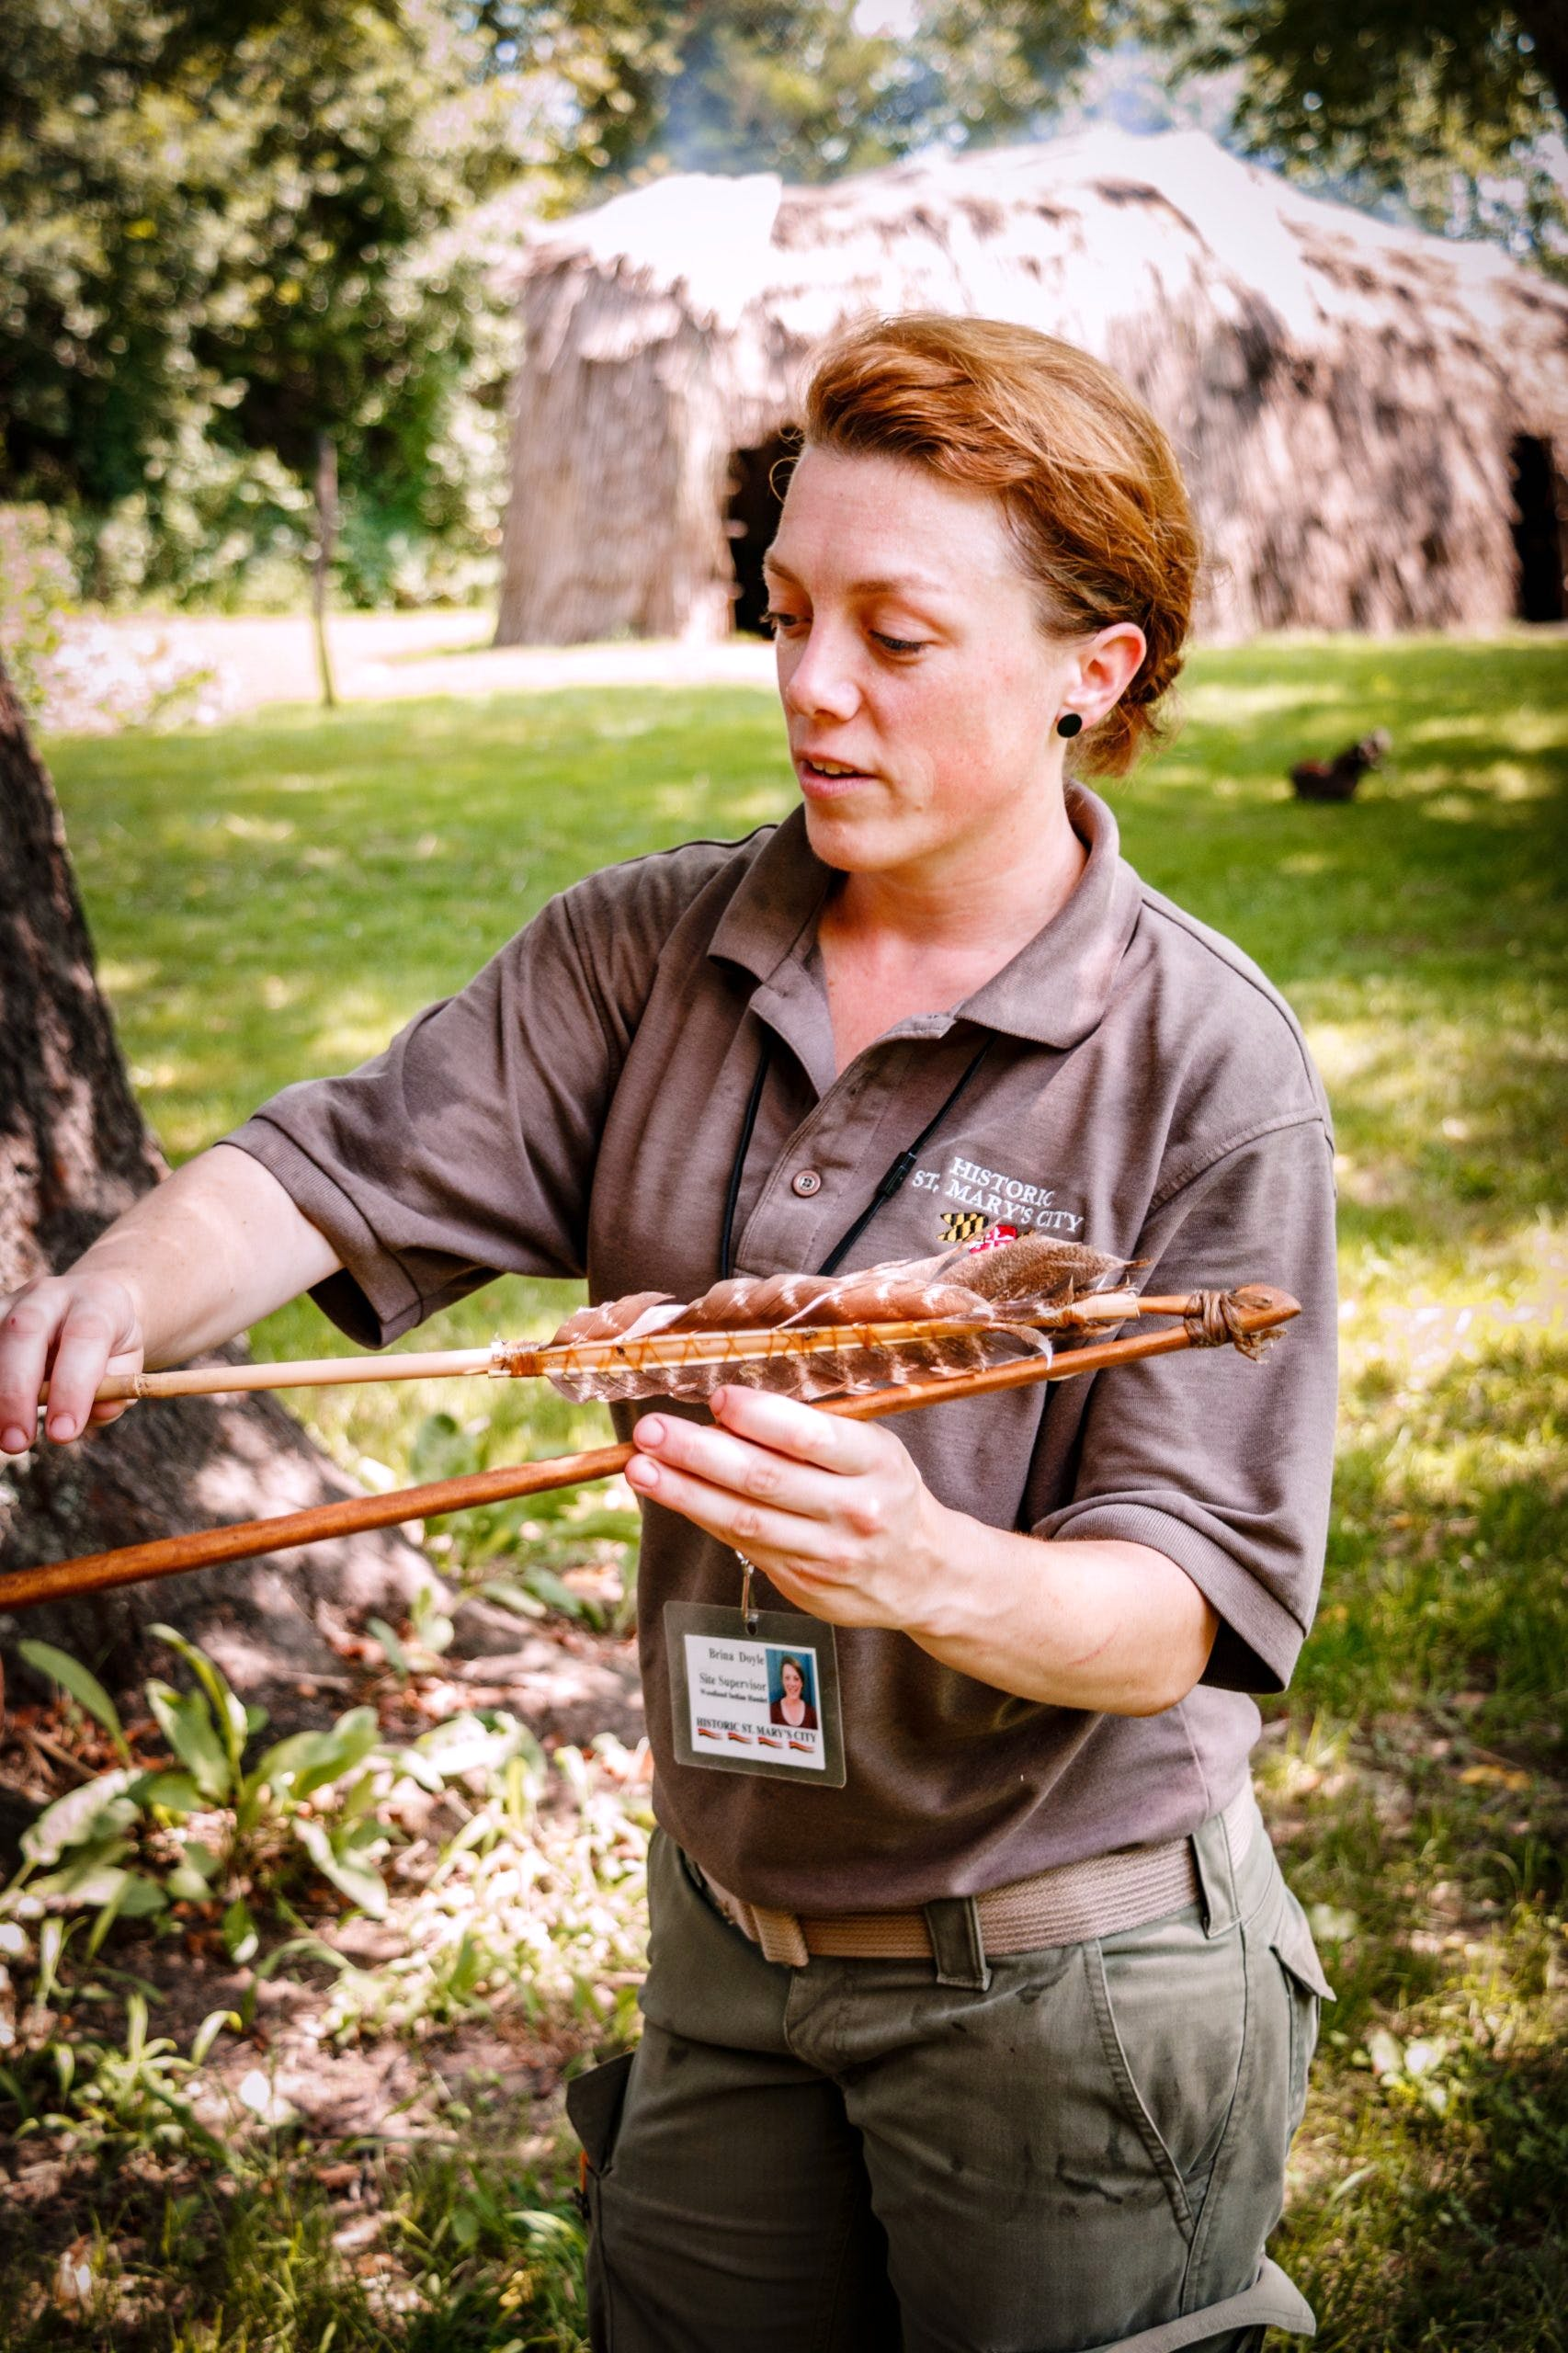 HSMC staff demonstrating how to use a spear throwing tool